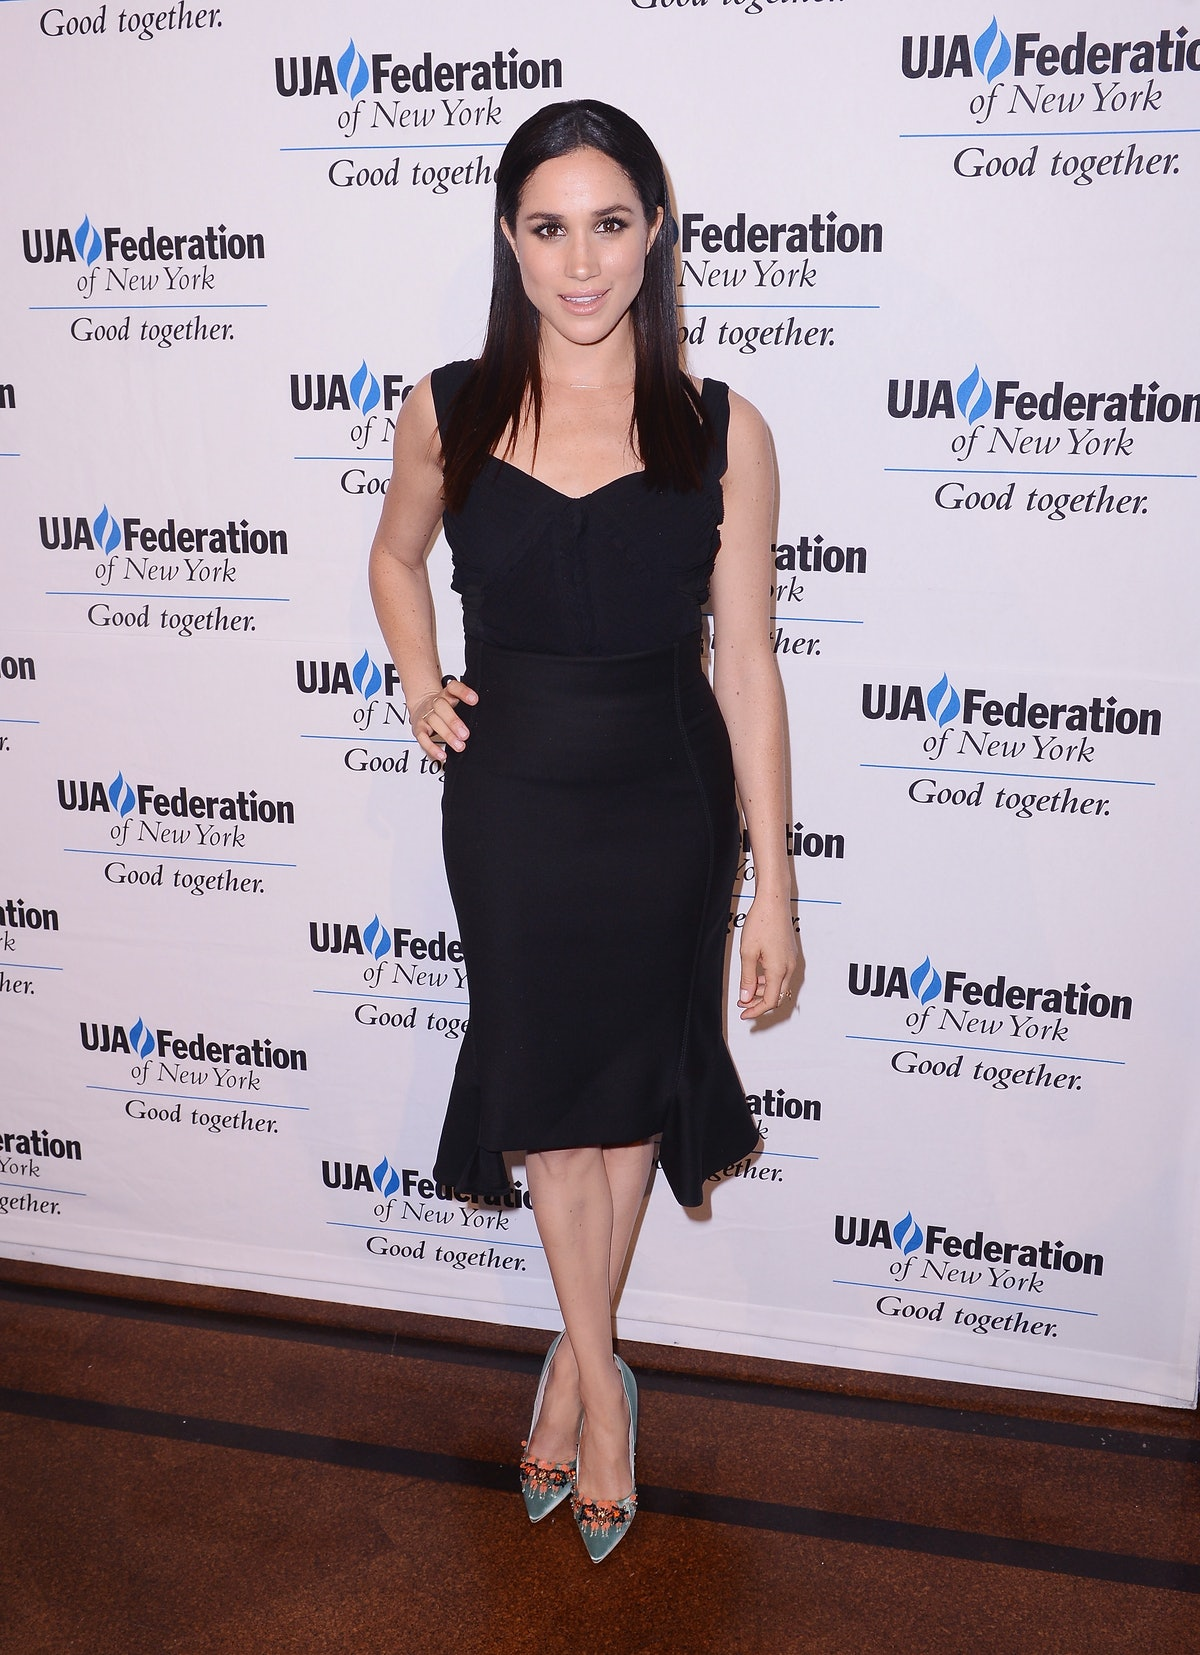 Meghan Markle at the The UJA-Federation of New York's Entertainment Division Signature Gala in New York, 2015